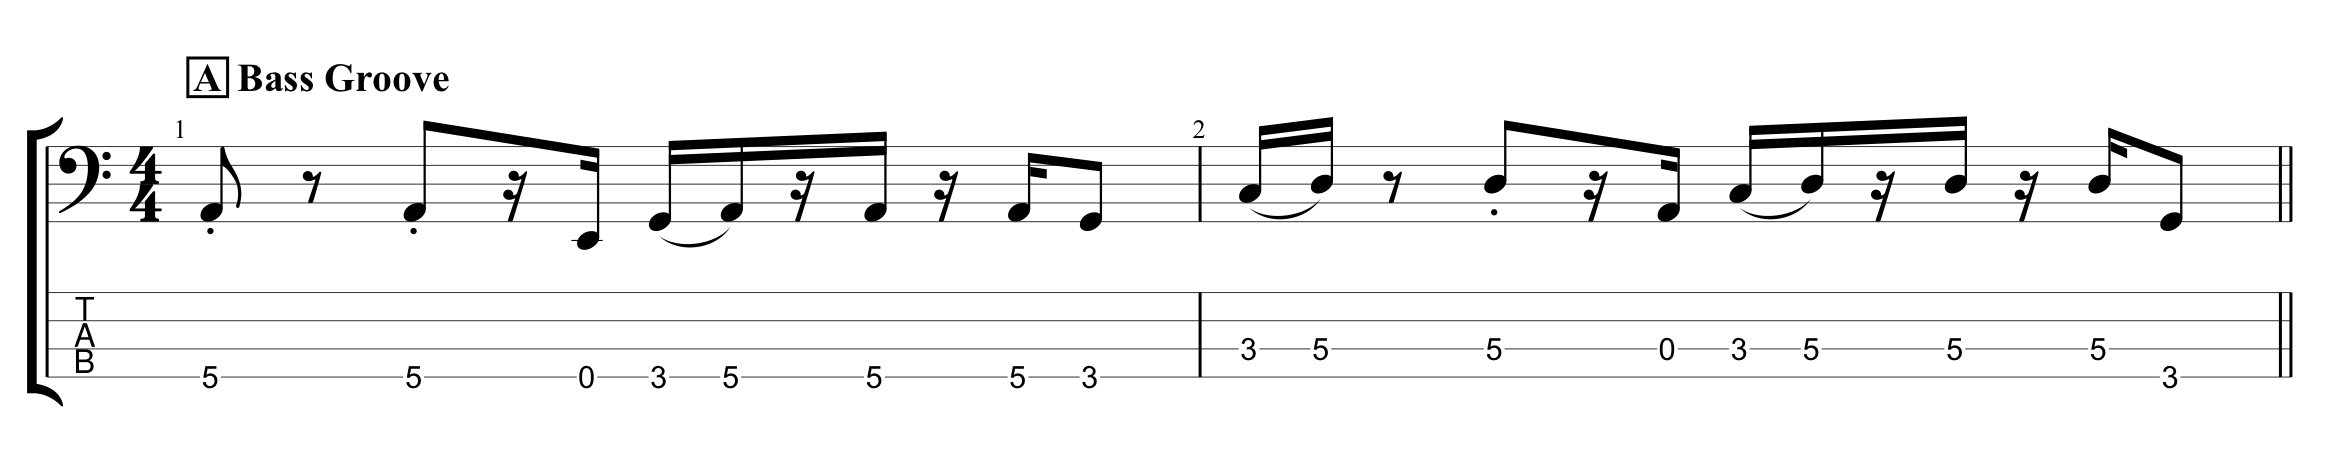 Bass Groove for Rhythmic Variations